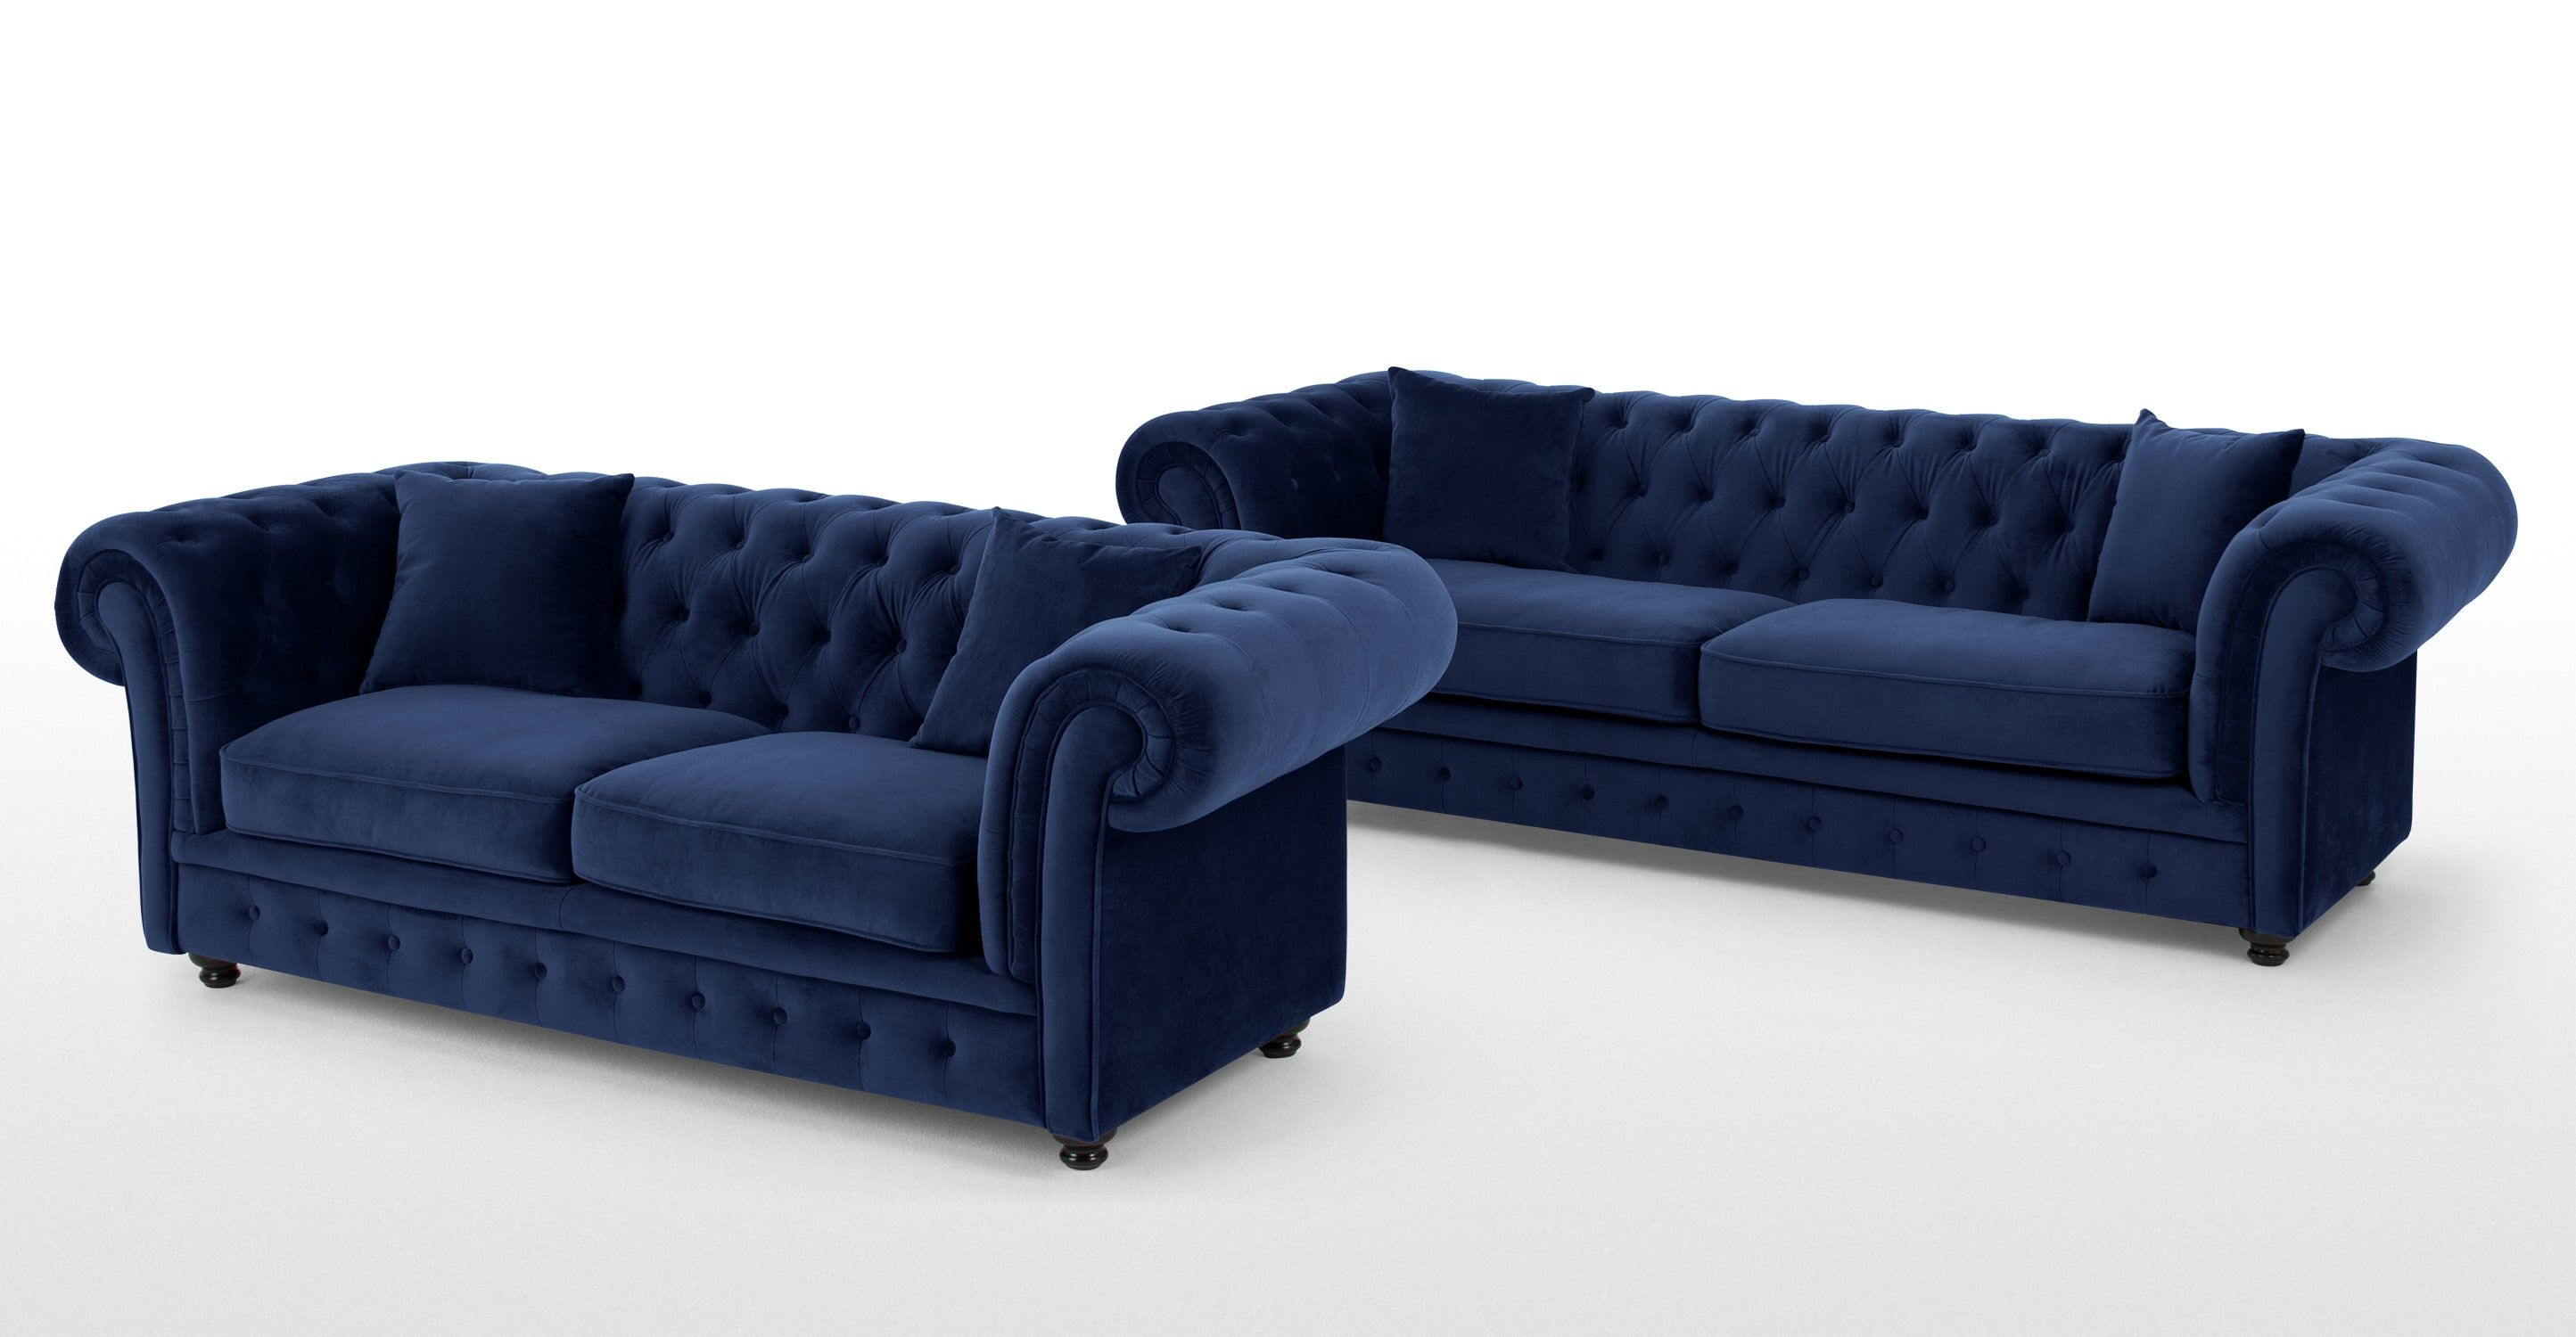 37 Reference Of Blue Chesterfield Sofa Uk In 2020 Blue Sofa Chesterfield Sofa Uk Blue Sofa Set